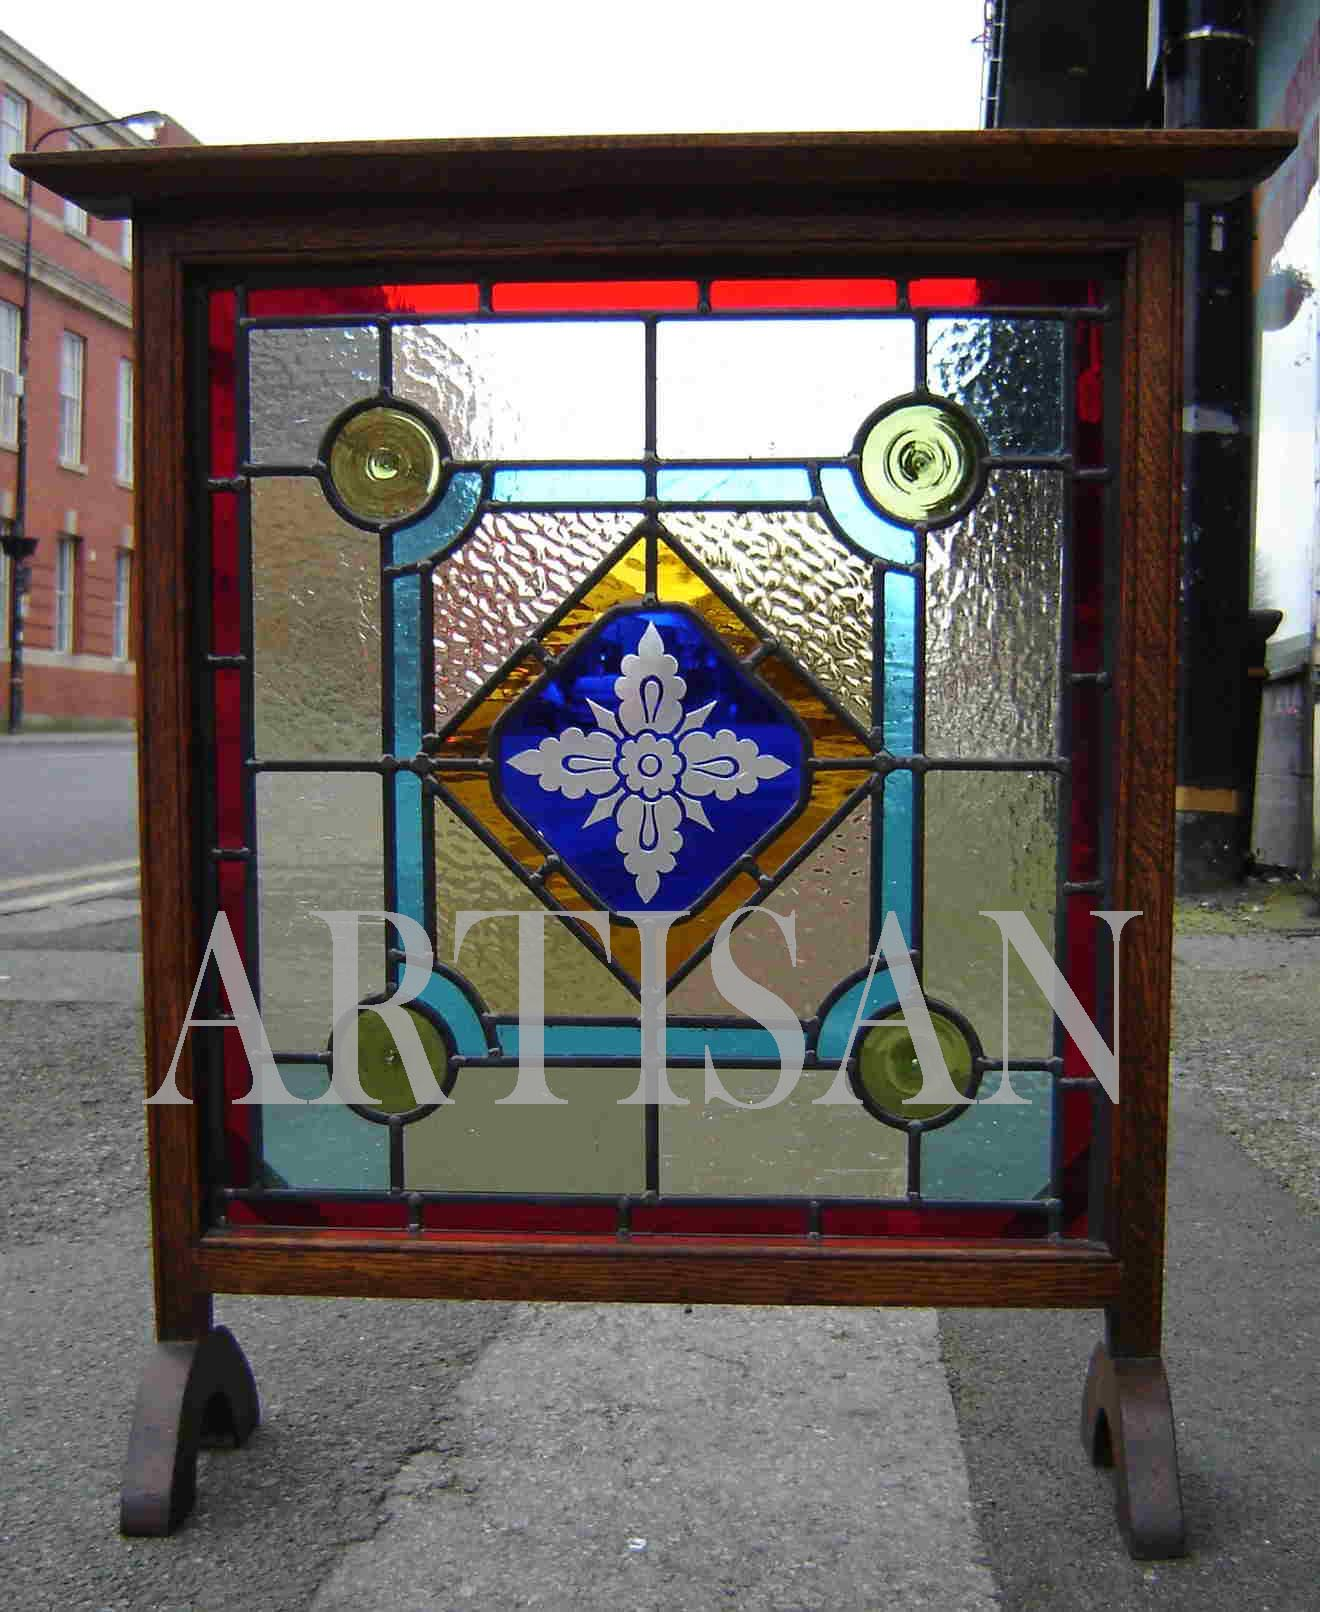 Artisan made window - now sold.